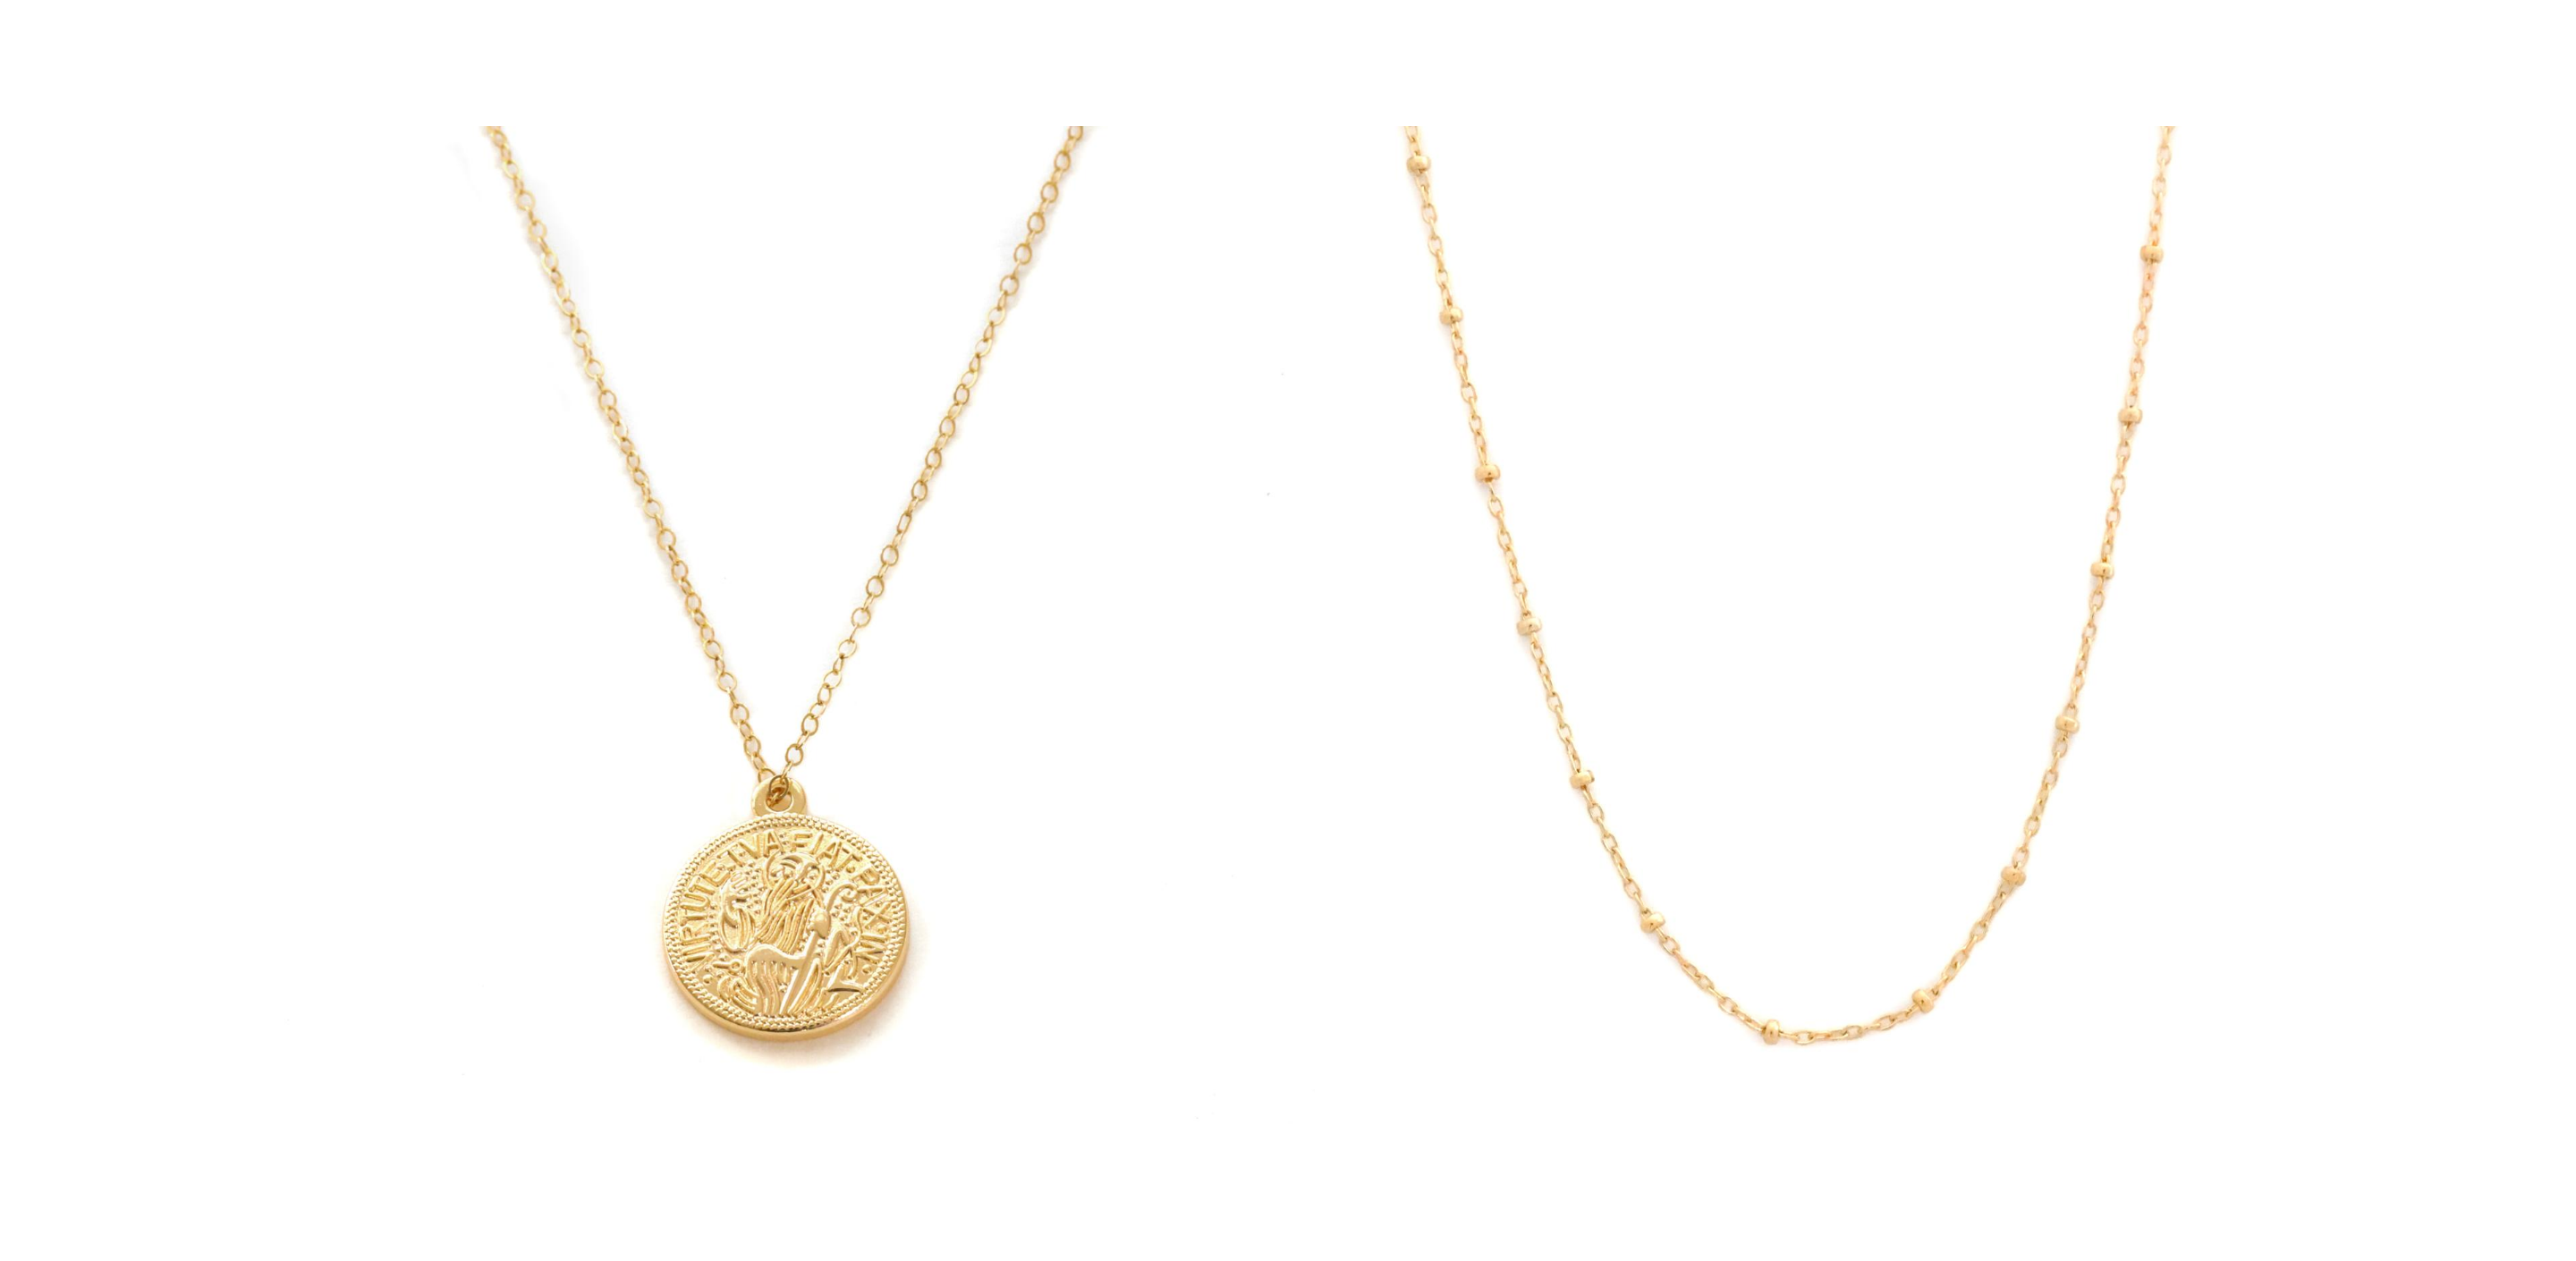 14K gold necklaces